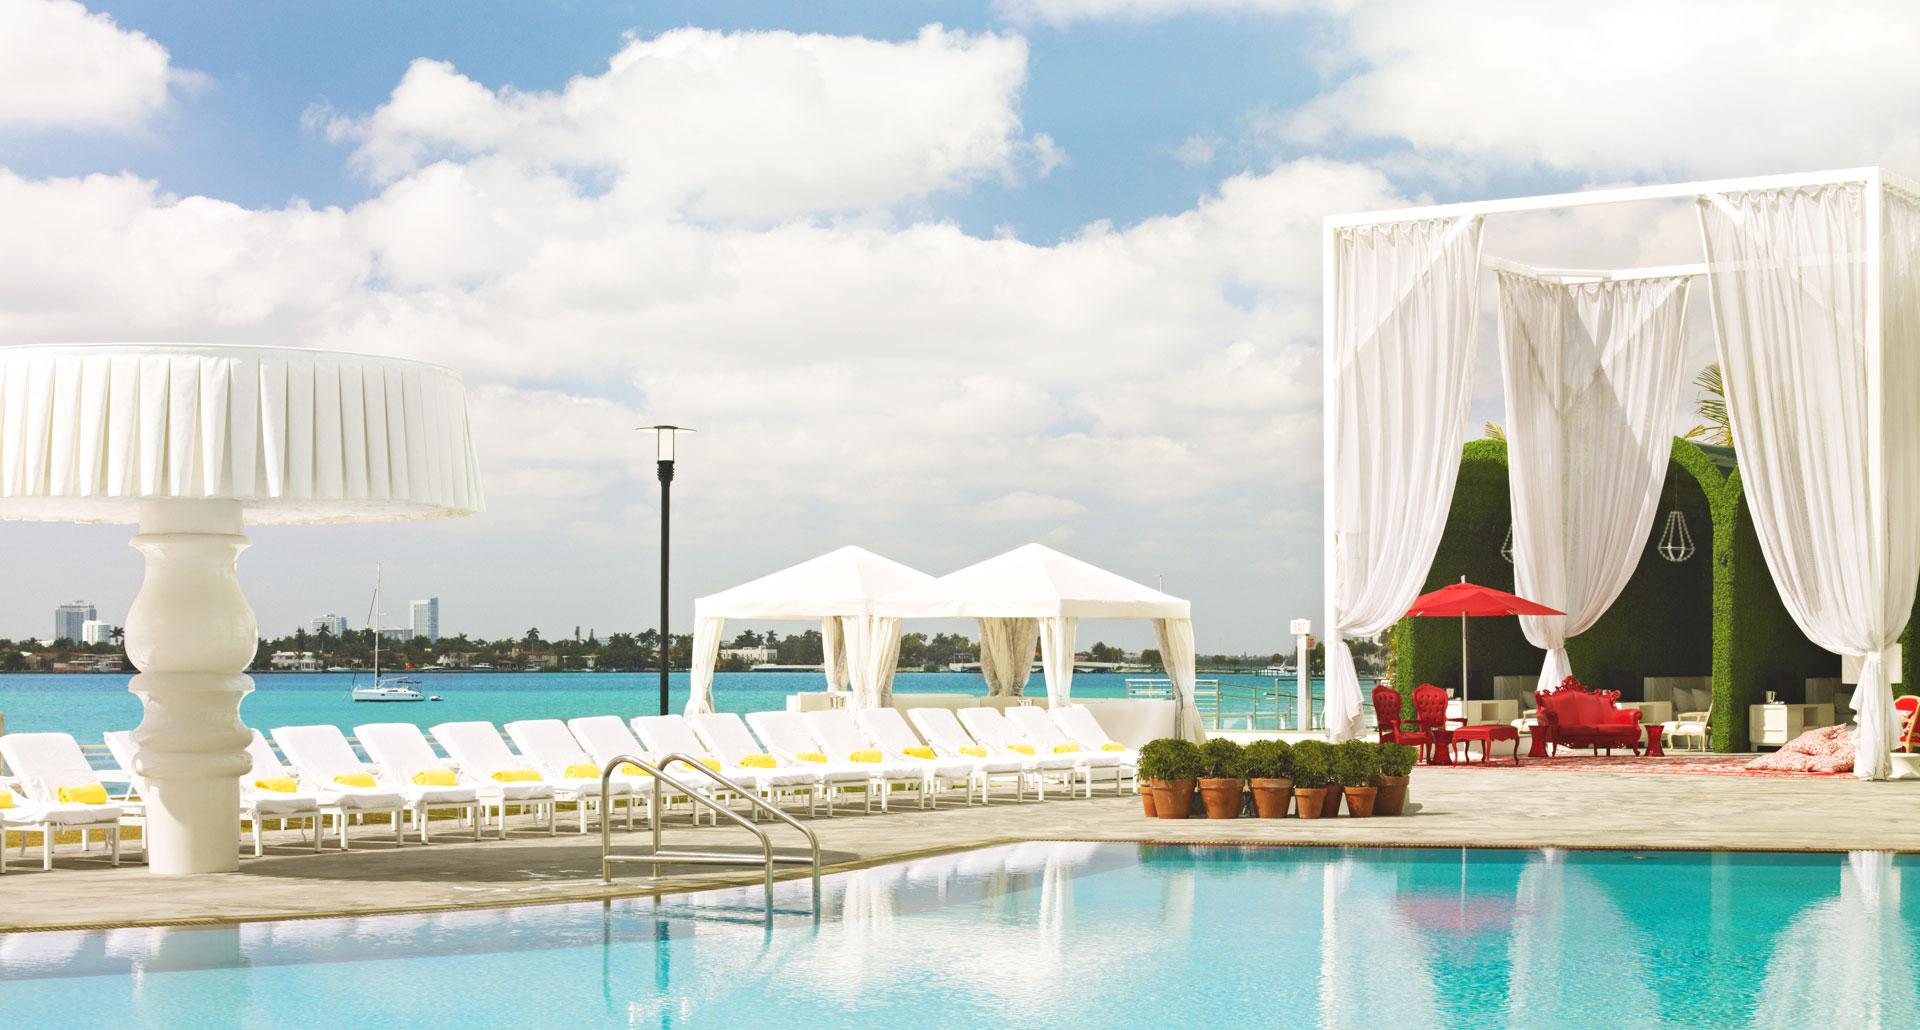 Mondrian South Beach - boutique hotel in Miami